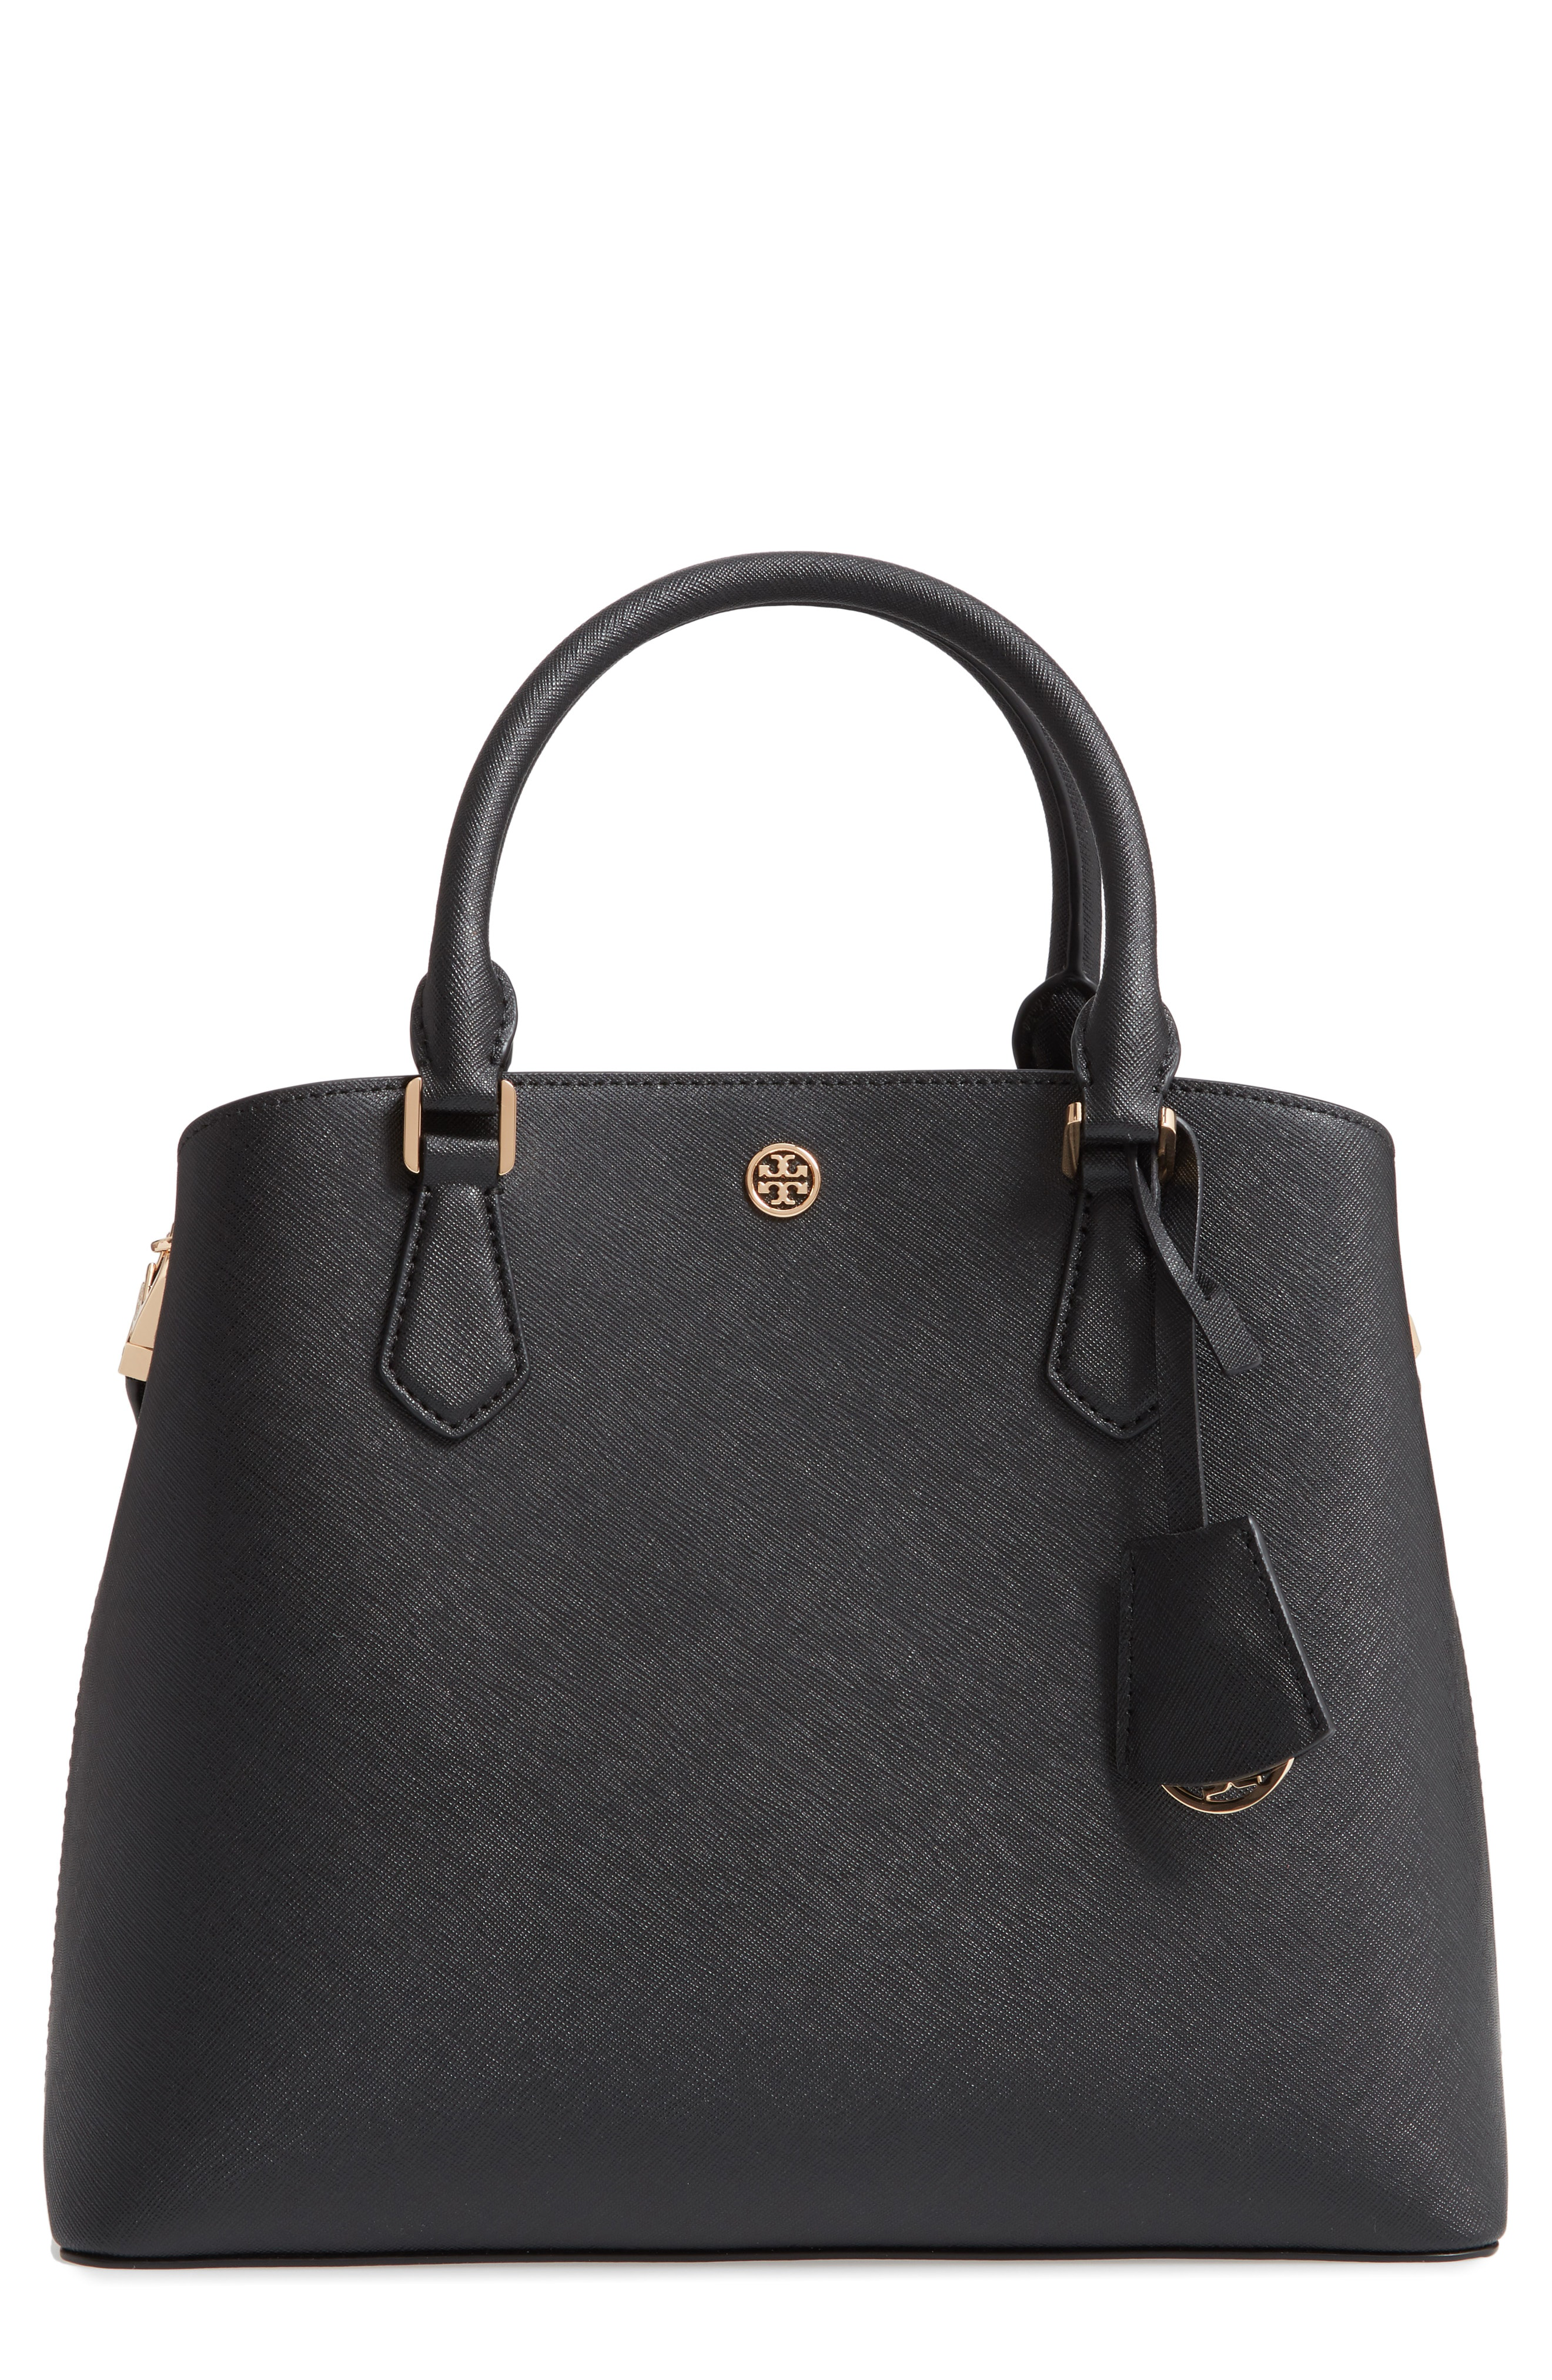 d3c05c2bae6 Rolled top handles and an optional shoulder strap offer covenient carrying  options. Style Name  Tory Burch Medium Robinson Leather Triple Compartment  Bag.